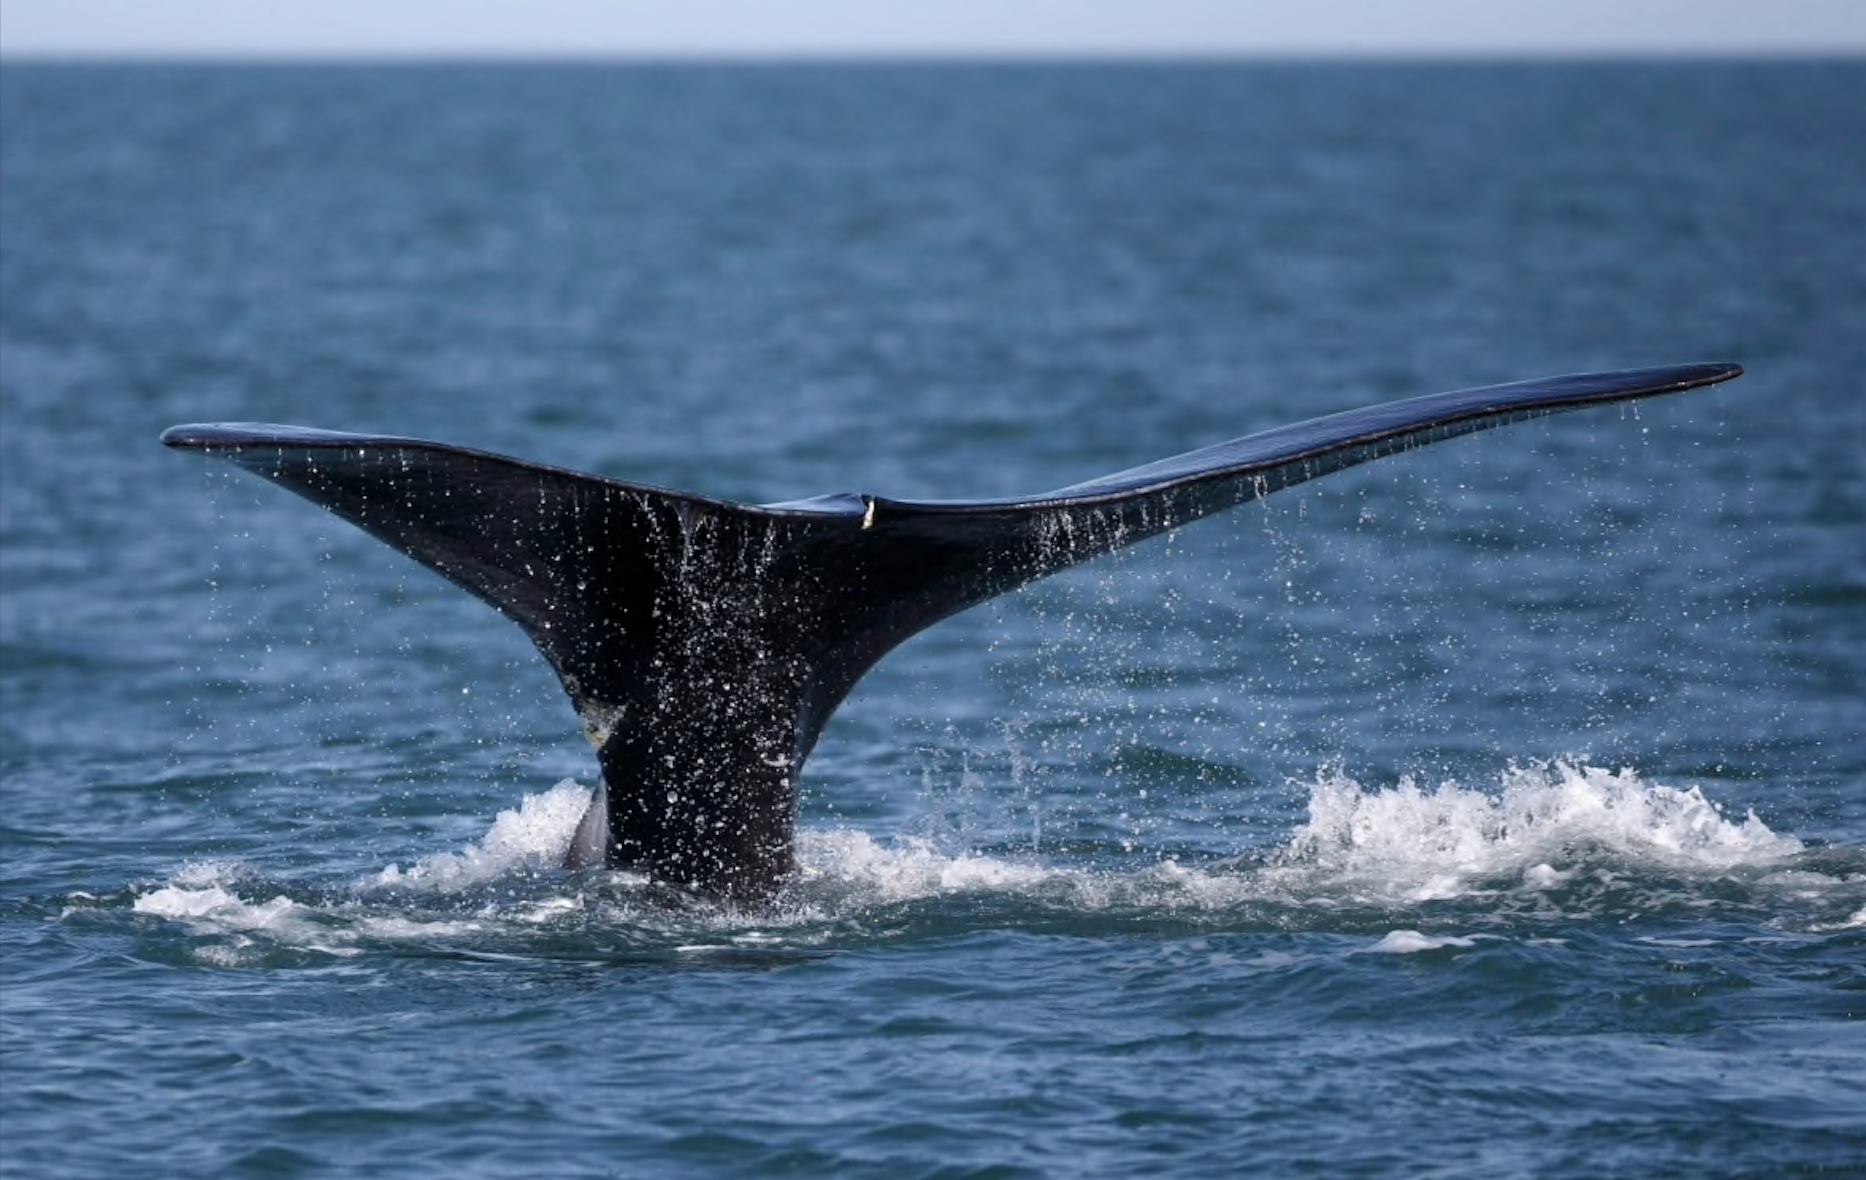 Canadian Space Agency using satellite data to track endangered right whales